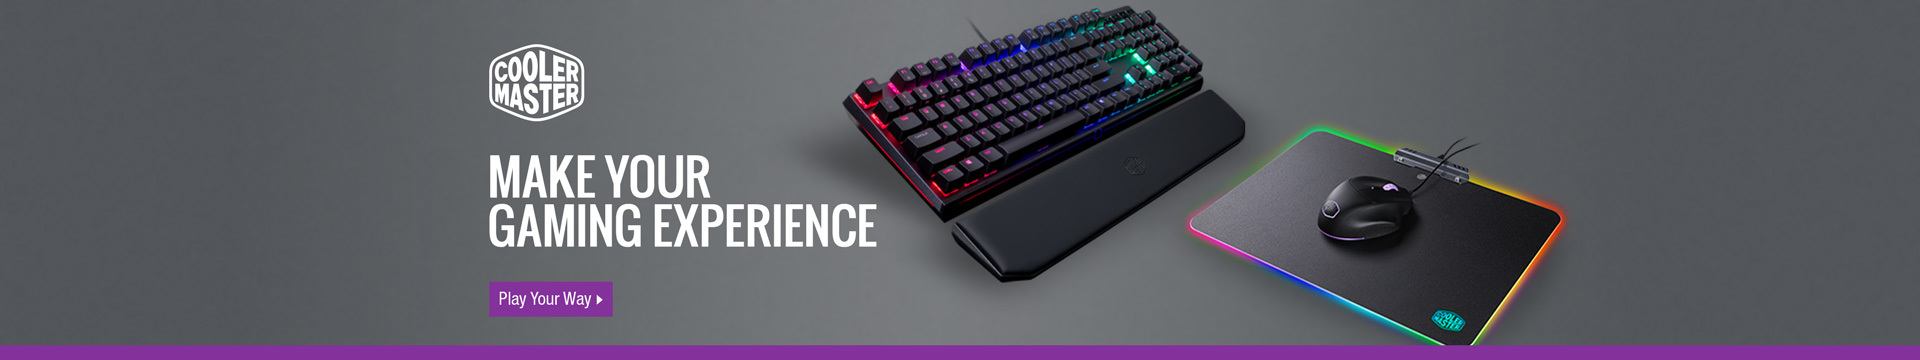 MAKE YOUR GAMING EXPERIENCE